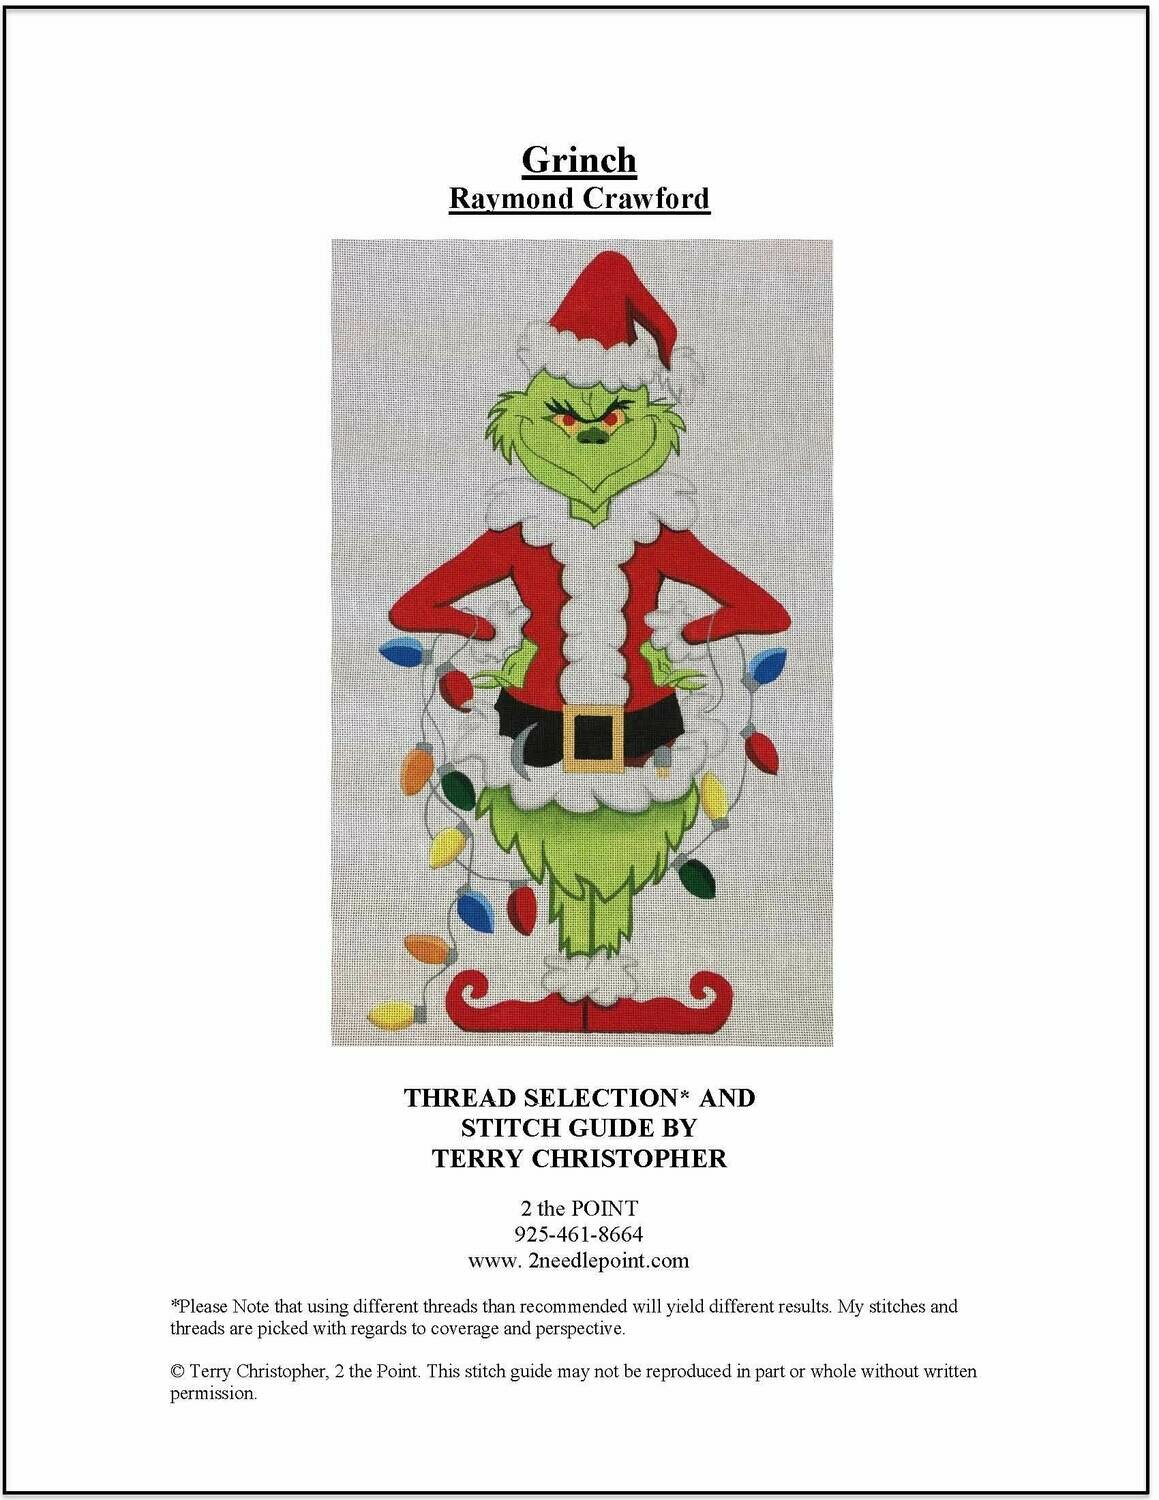 Raymond Crawford, Grinch RCH01623